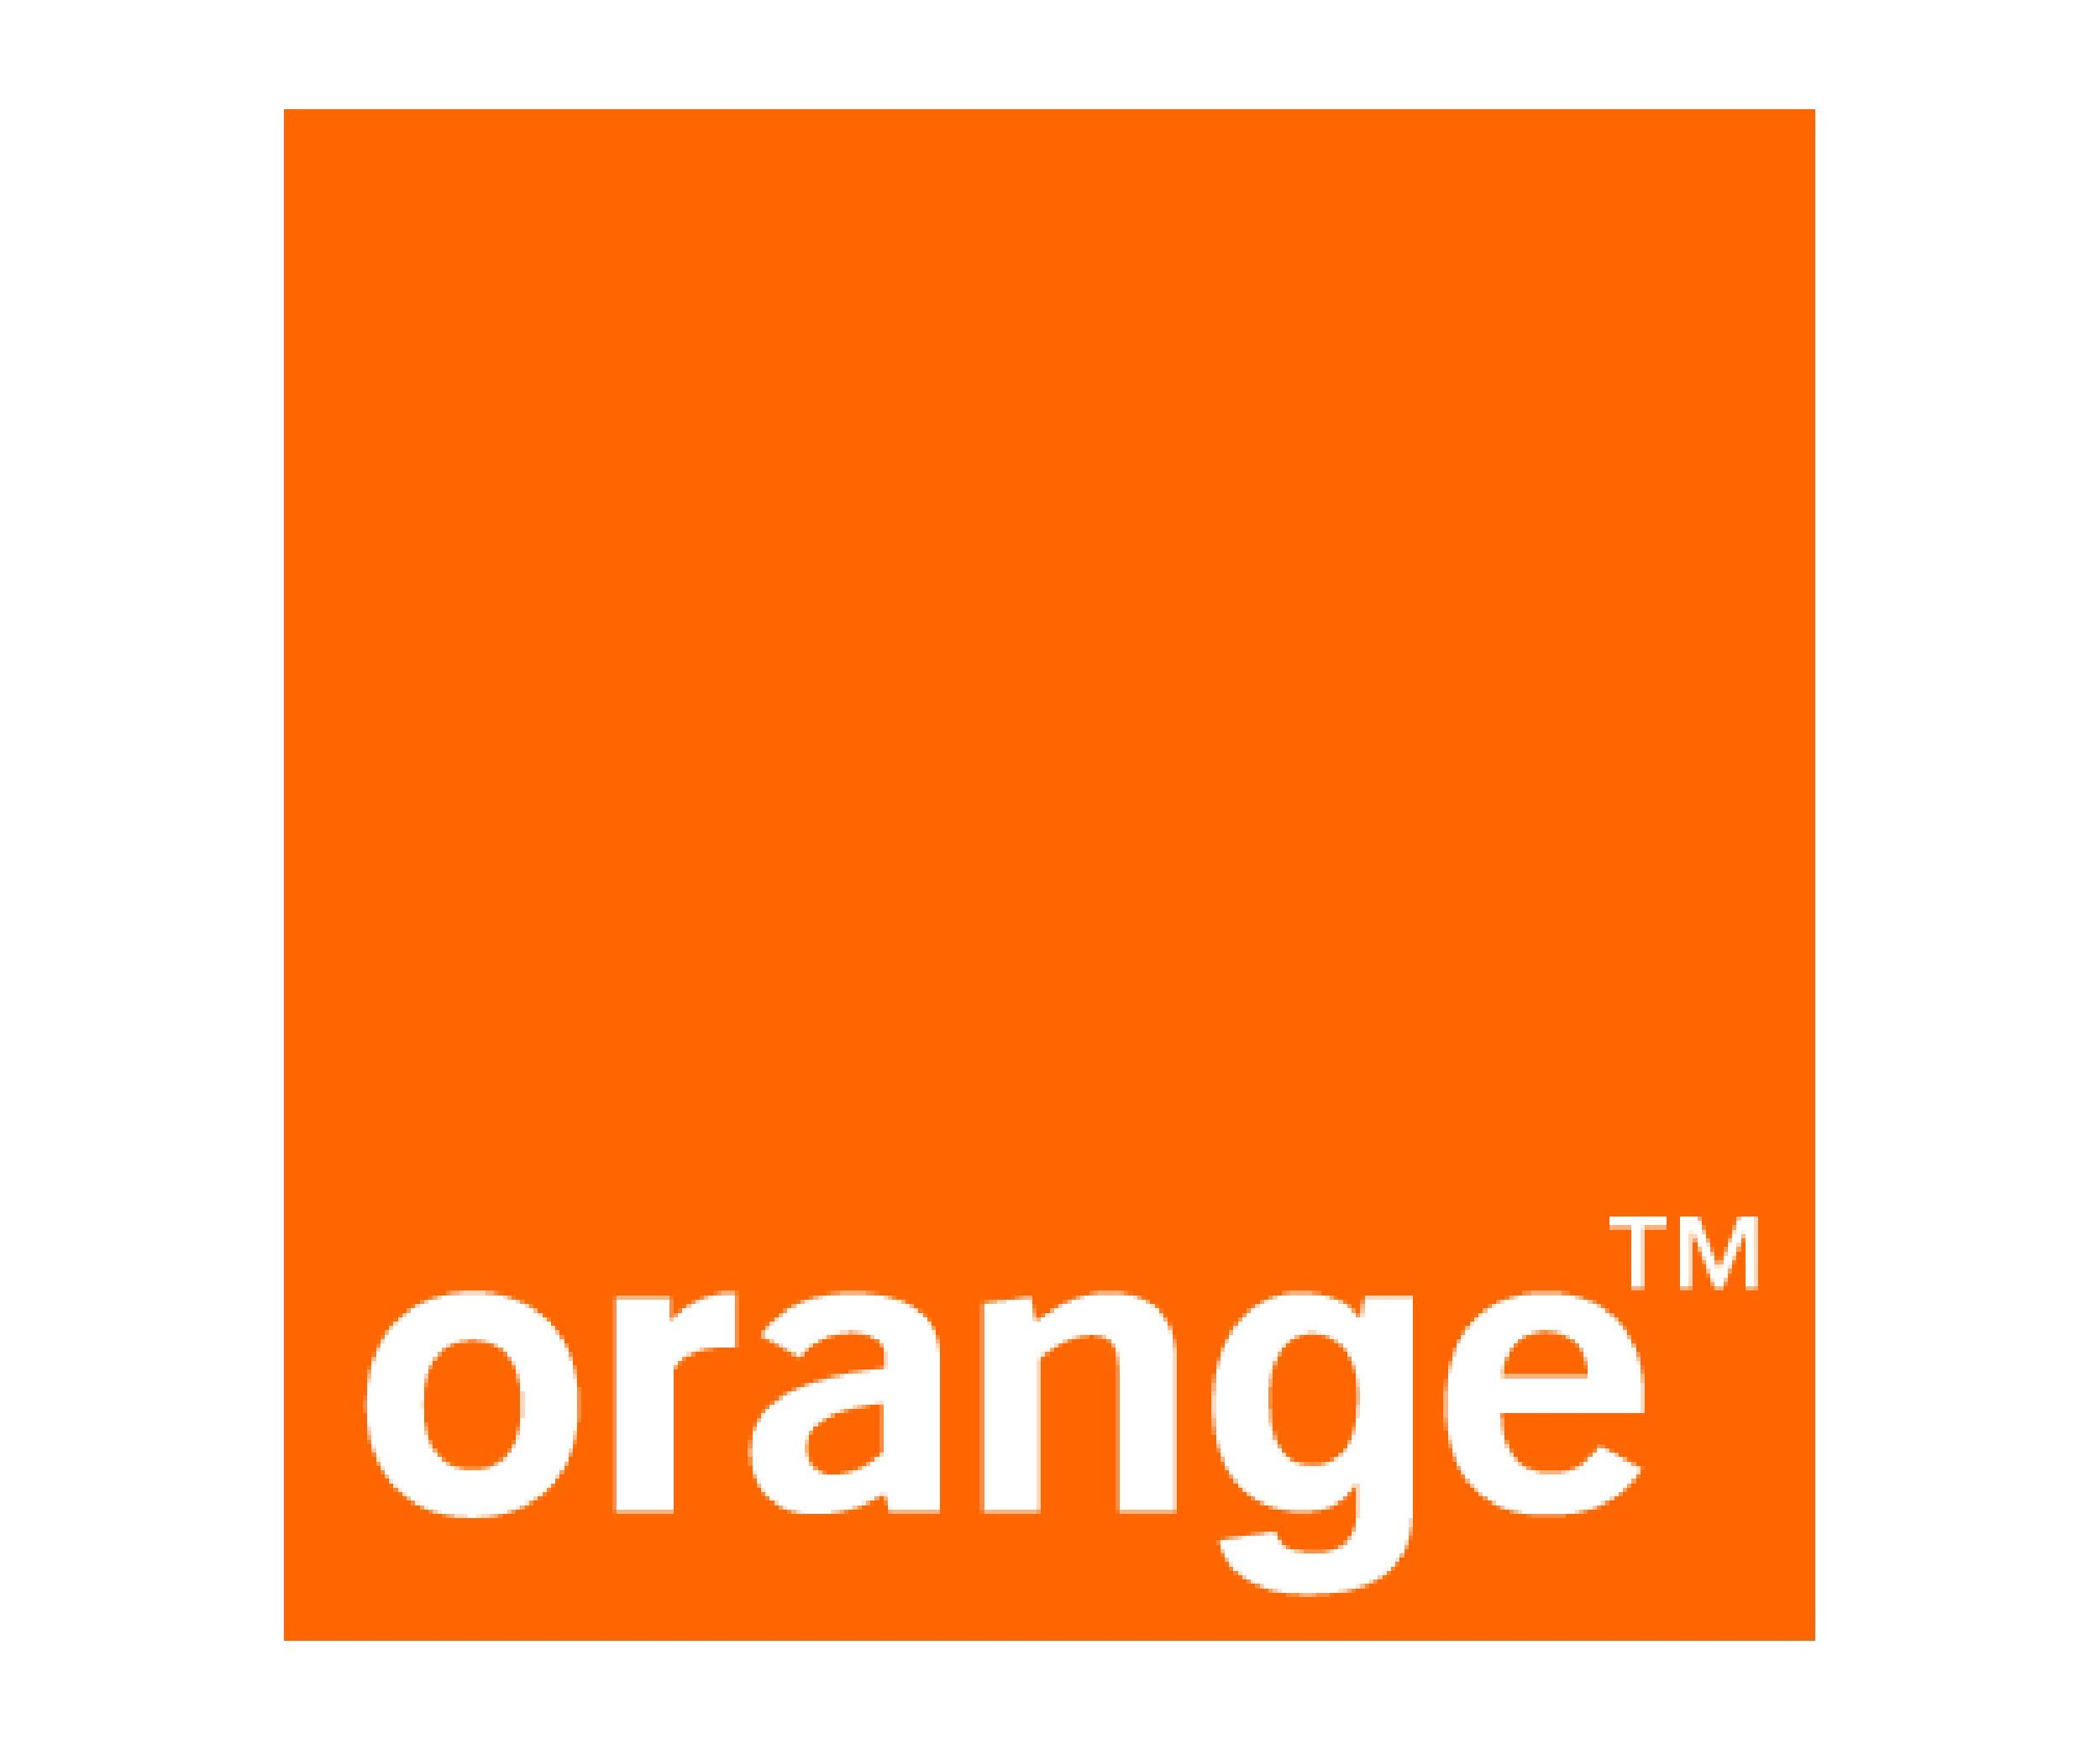 10GB Data & Optional Calls. Spain & Europe SIM. 1st USE Must BE in Spain Then You can go Anywhere in The European Union. Bundle Valid 30 Days. NO European CC Needed to top up. English Cust. Service. by Orange